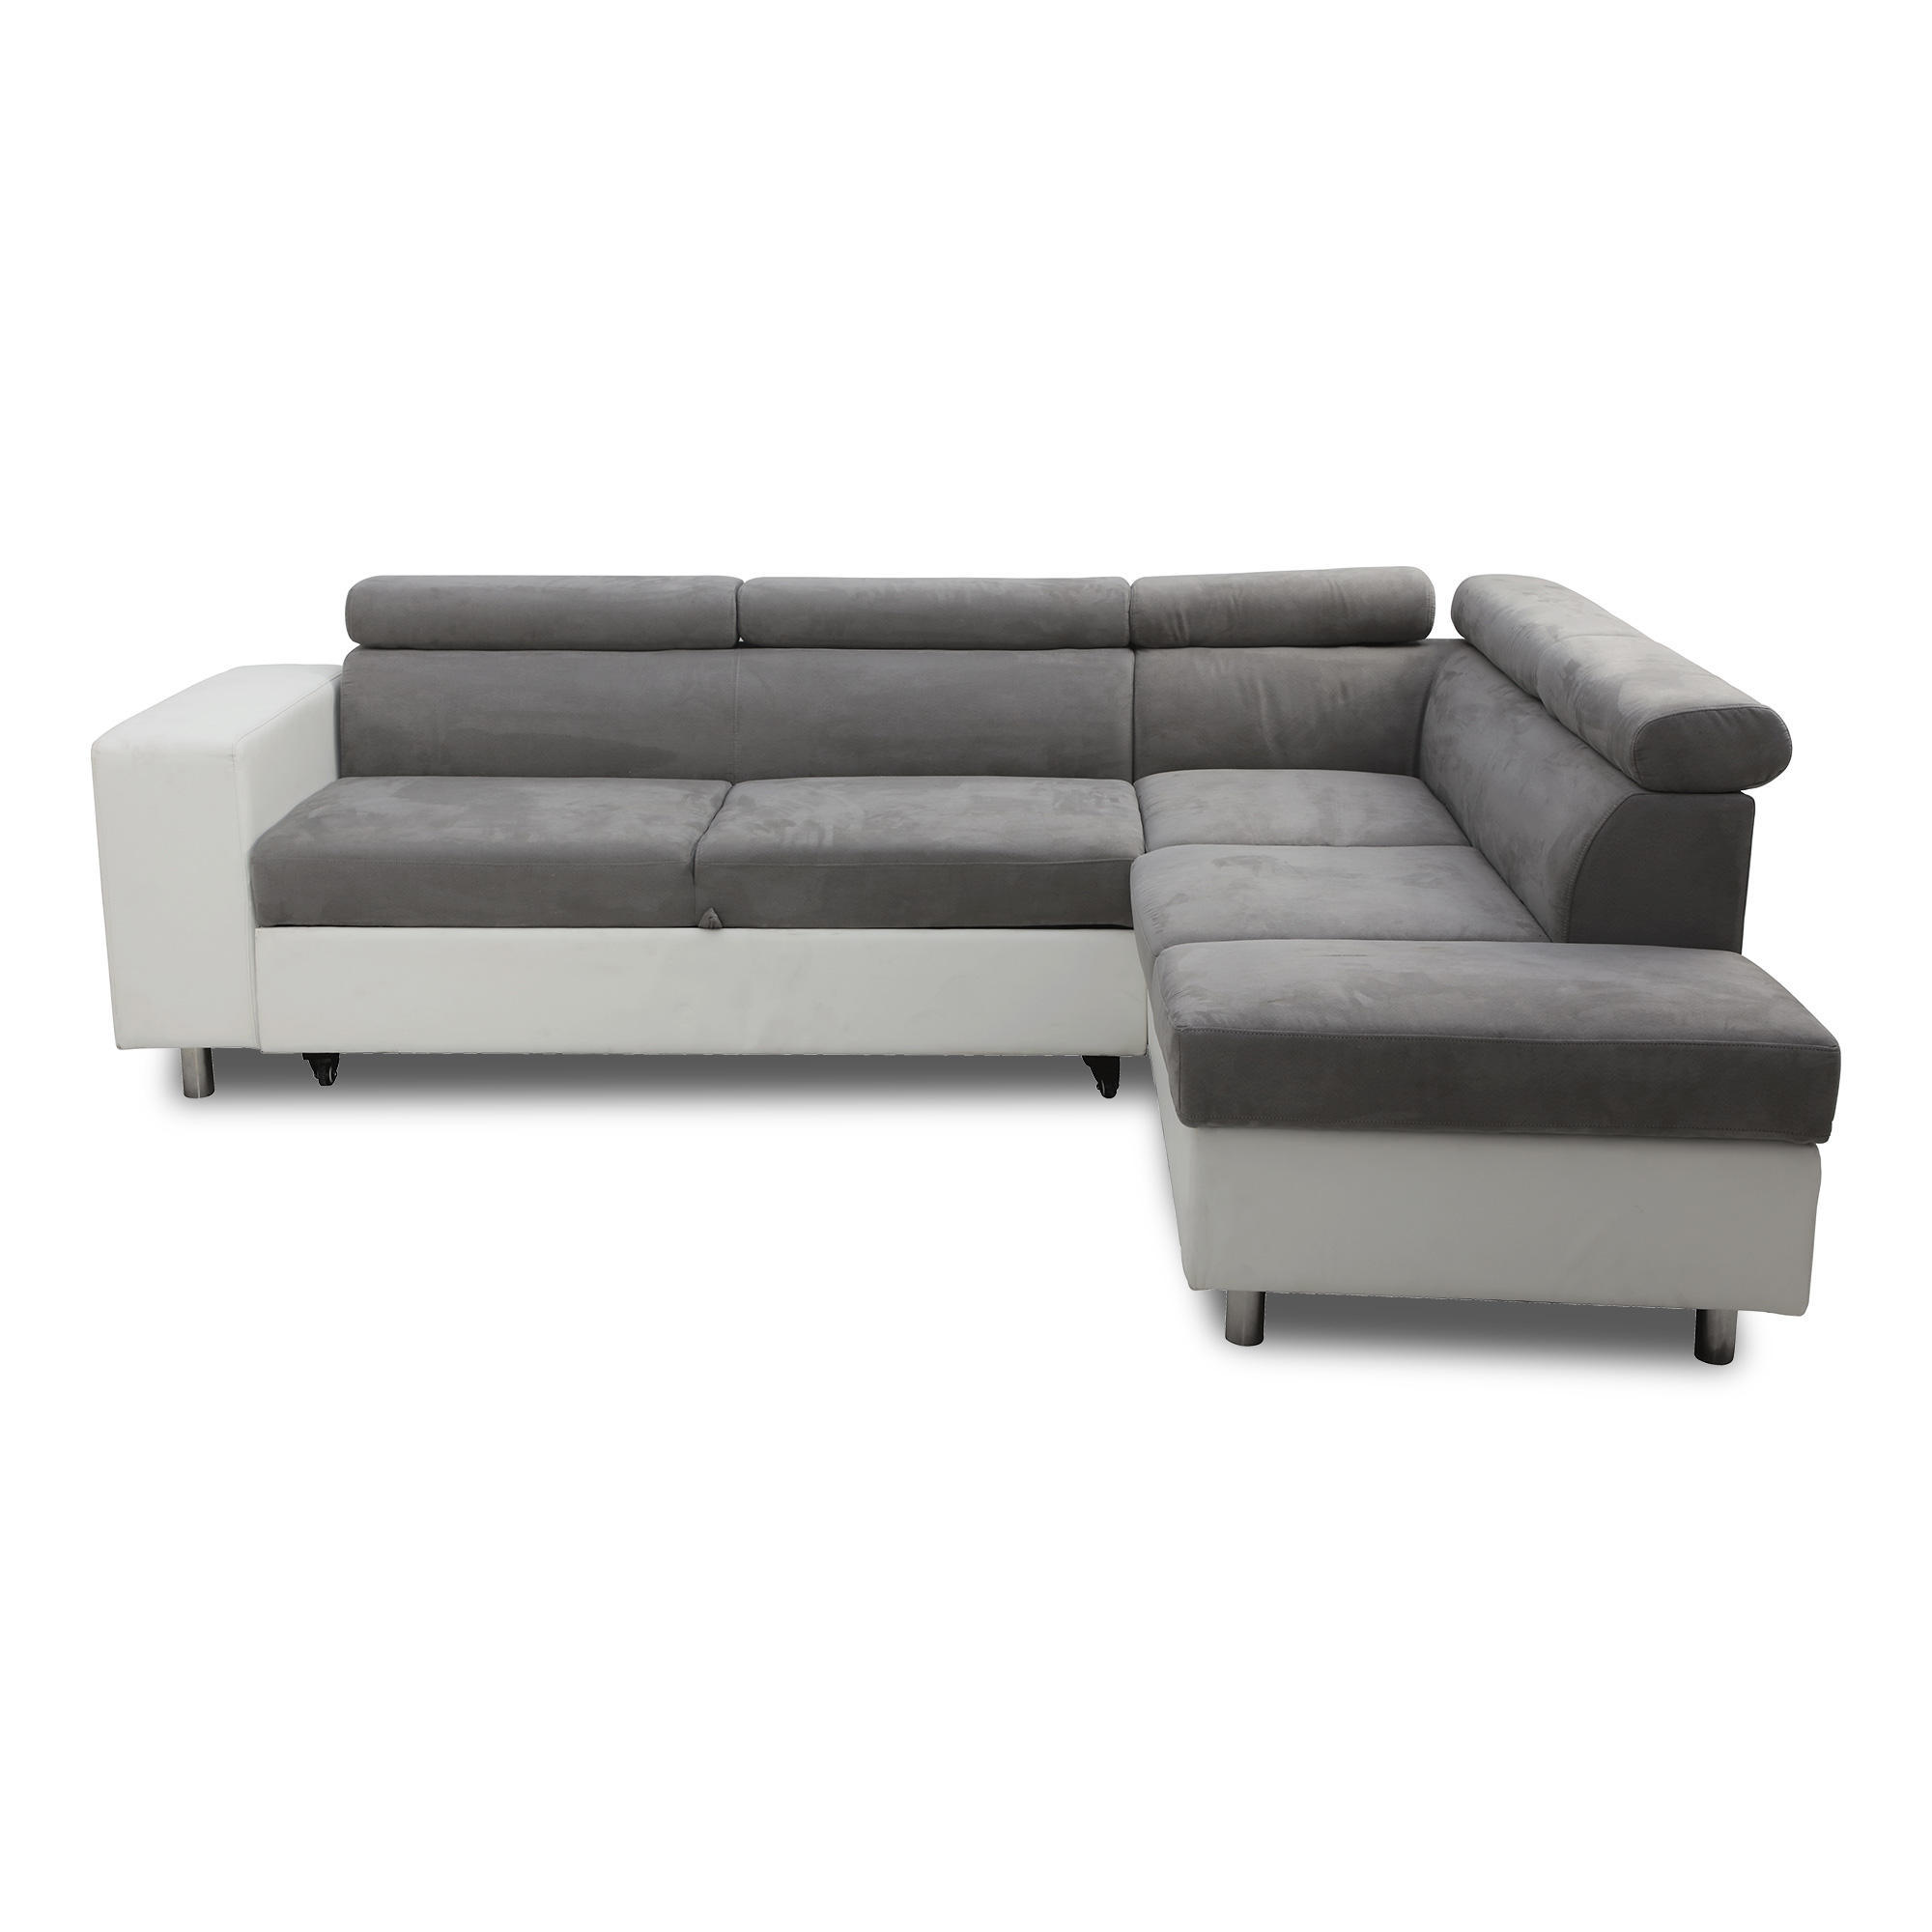 lounge sofa modern furniture manufacturers corner sofas office living room PU leather fabric sofa bed